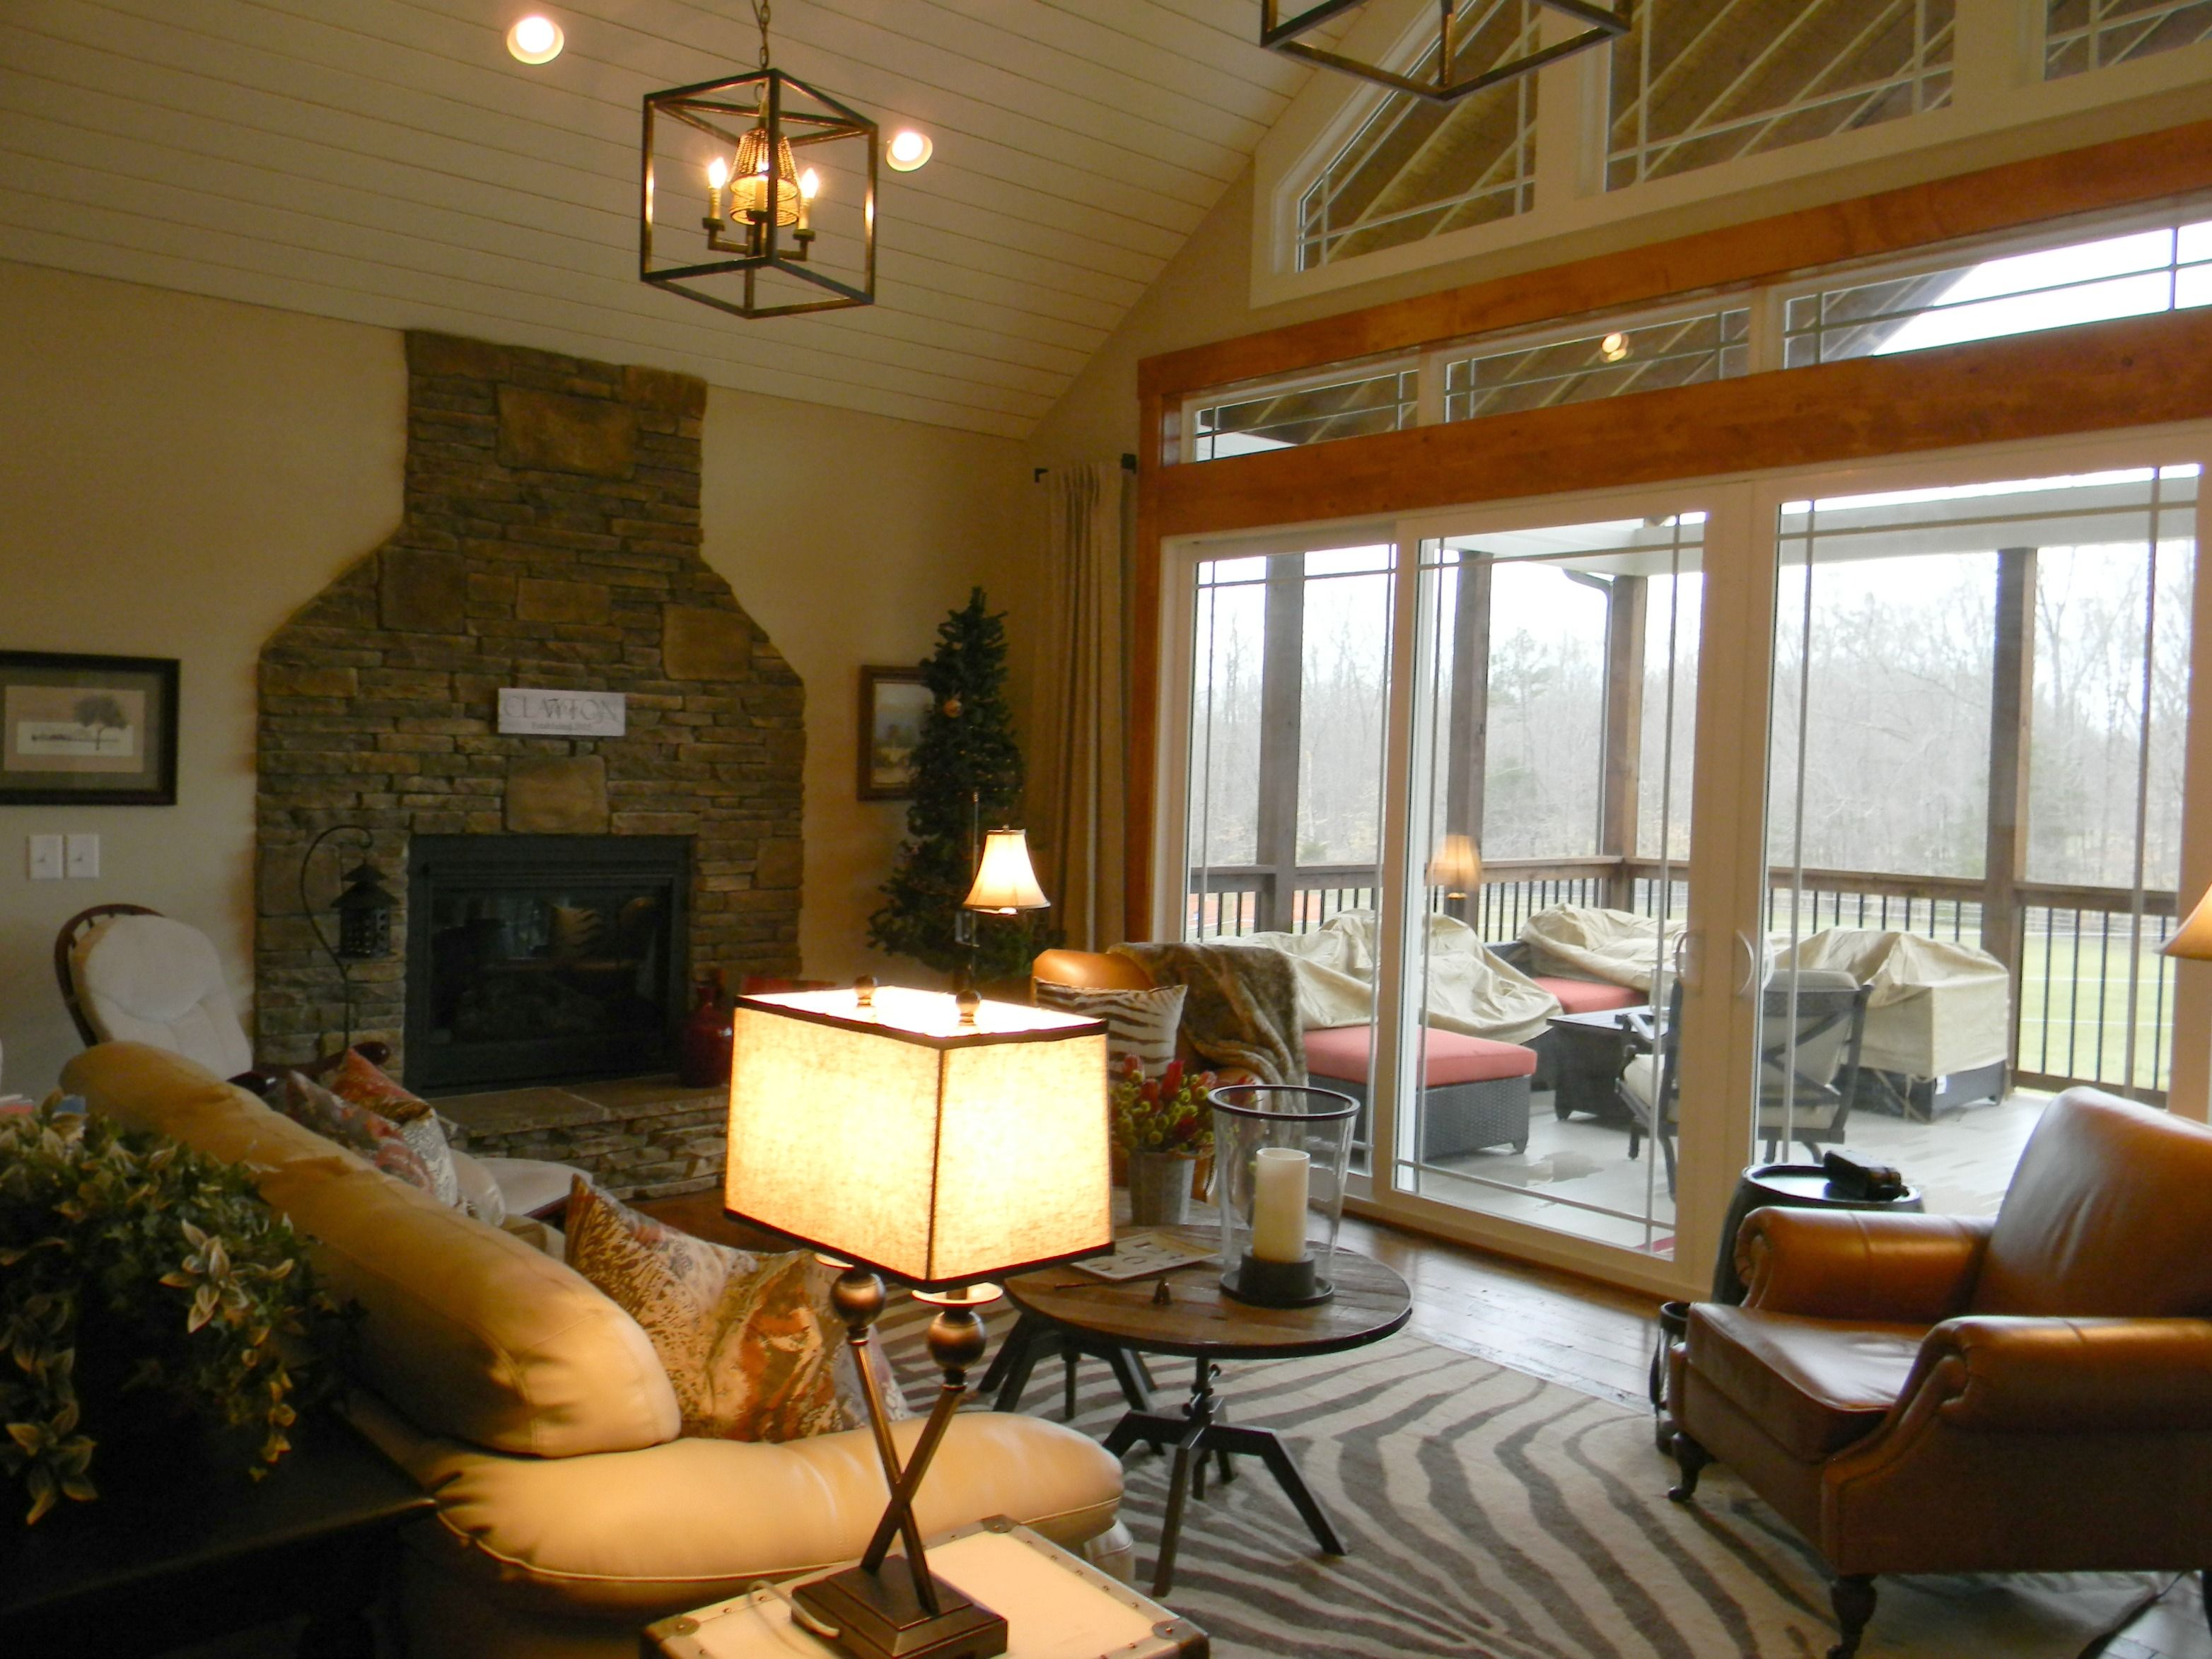 One of the living areas in the house with a gorgeous fireplace and big windows looking out into the backyard and farm.